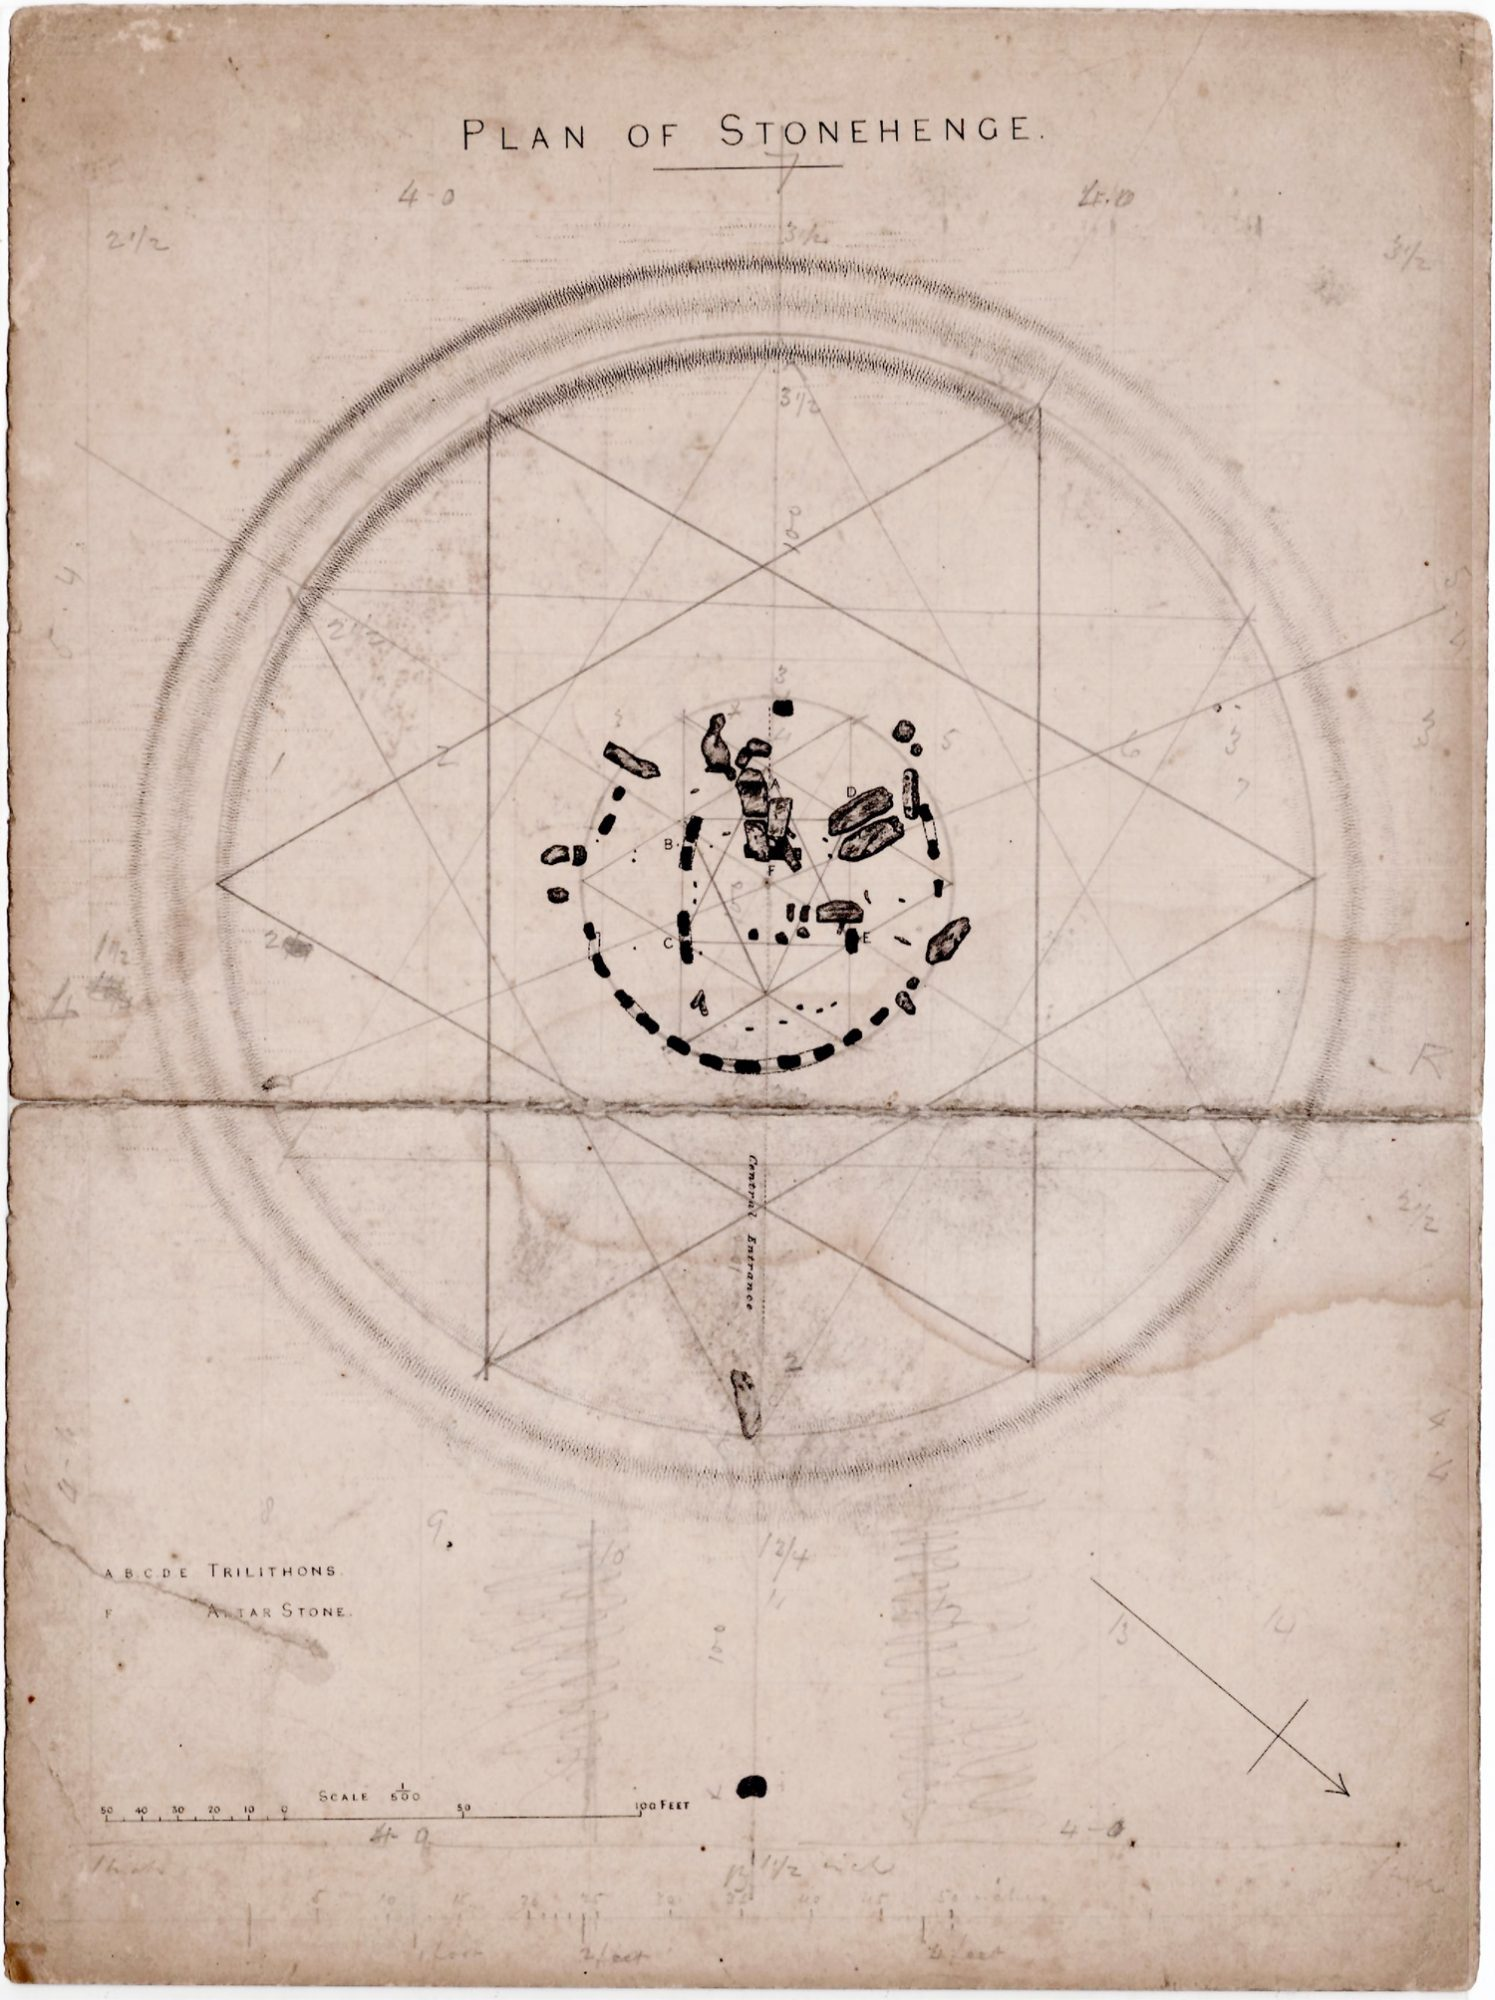 Stonehenge  An Archive Of Manuscript Maps  Plans And